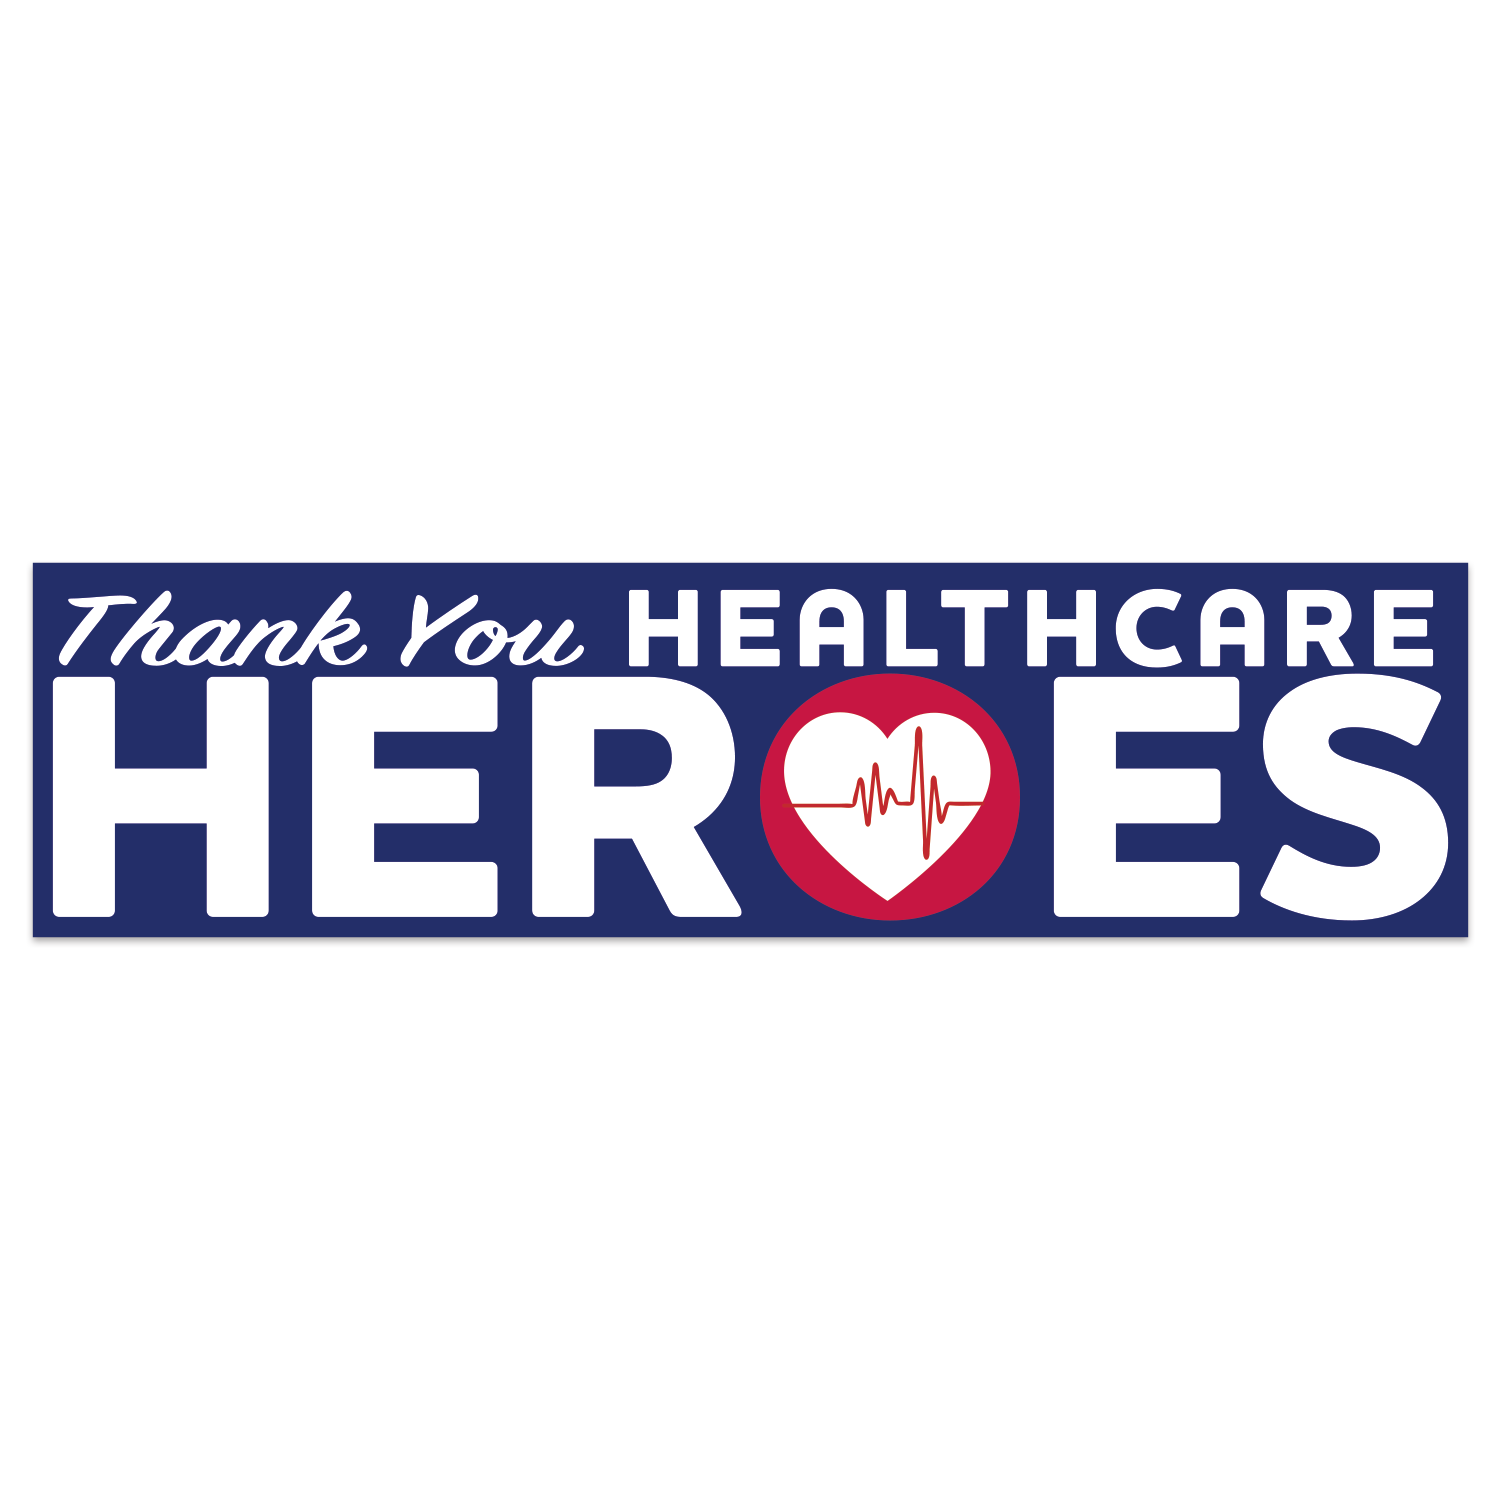 https://www.sswprinting.com/images/products_gallery_images/595001_Thank-you-Healthcare-Heroes_hi-res.png